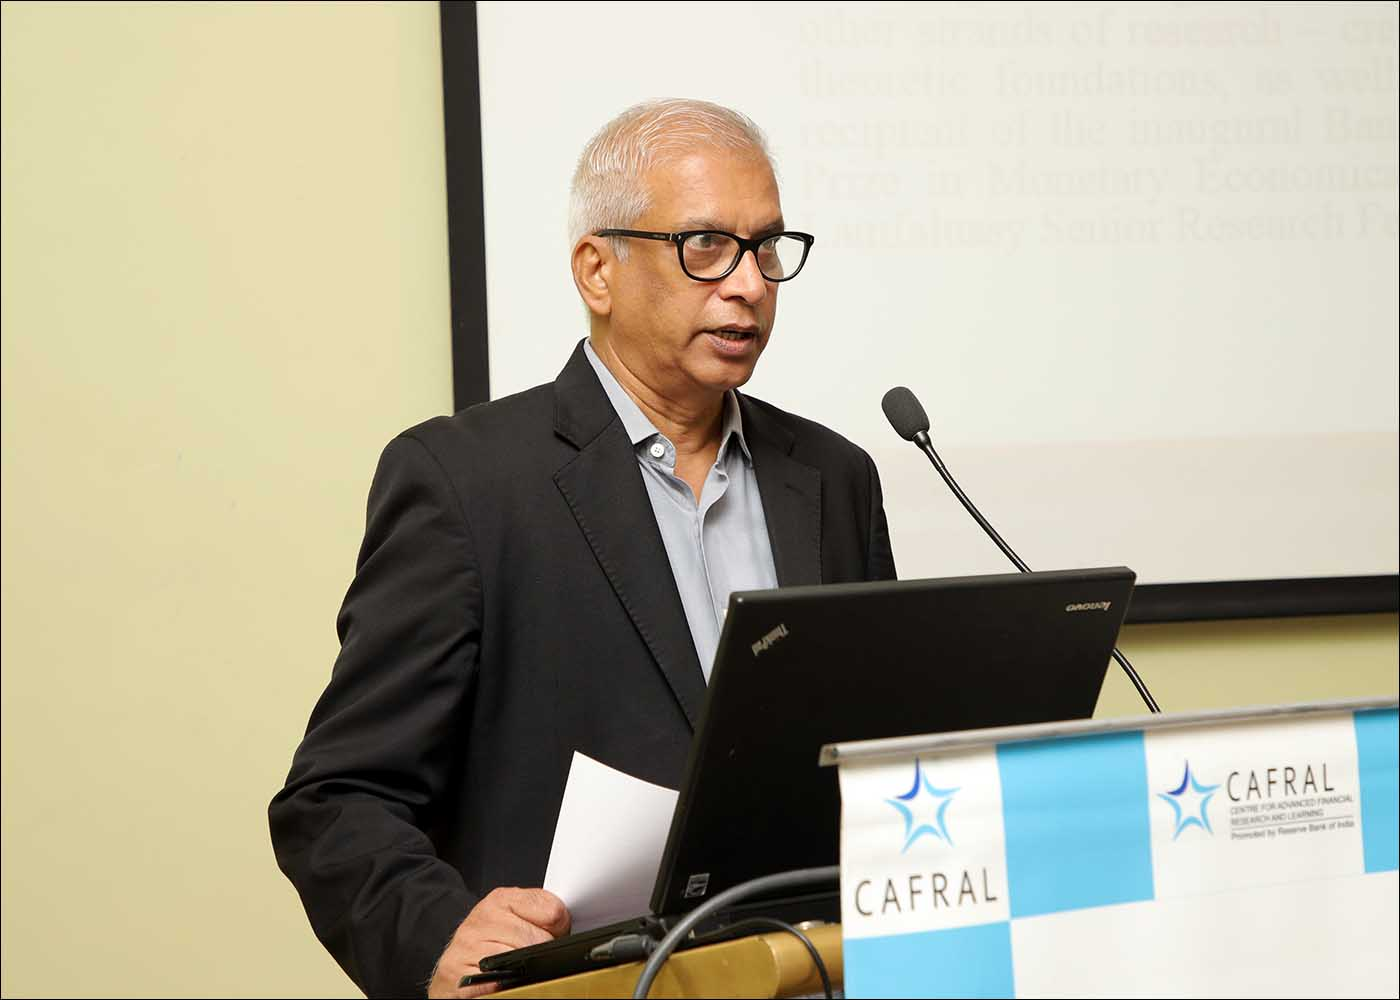 M P Baliga, Senior Program Director, CAFRAL